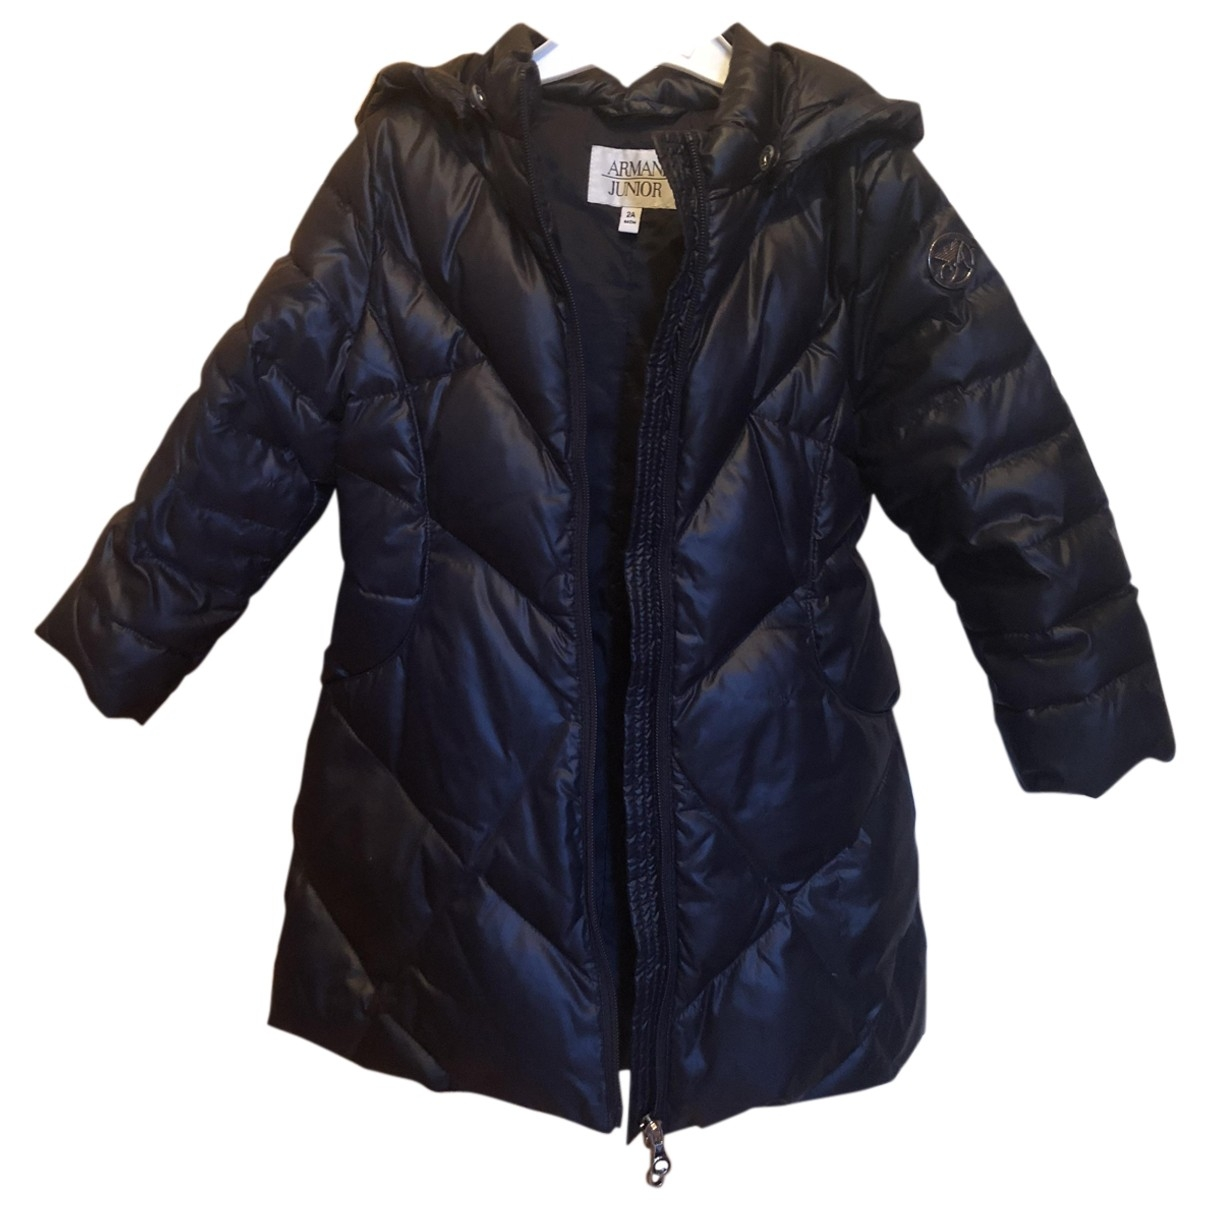 Armani Baby \N Navy jacket & coat for Kids 2 years - up to 86cm FR